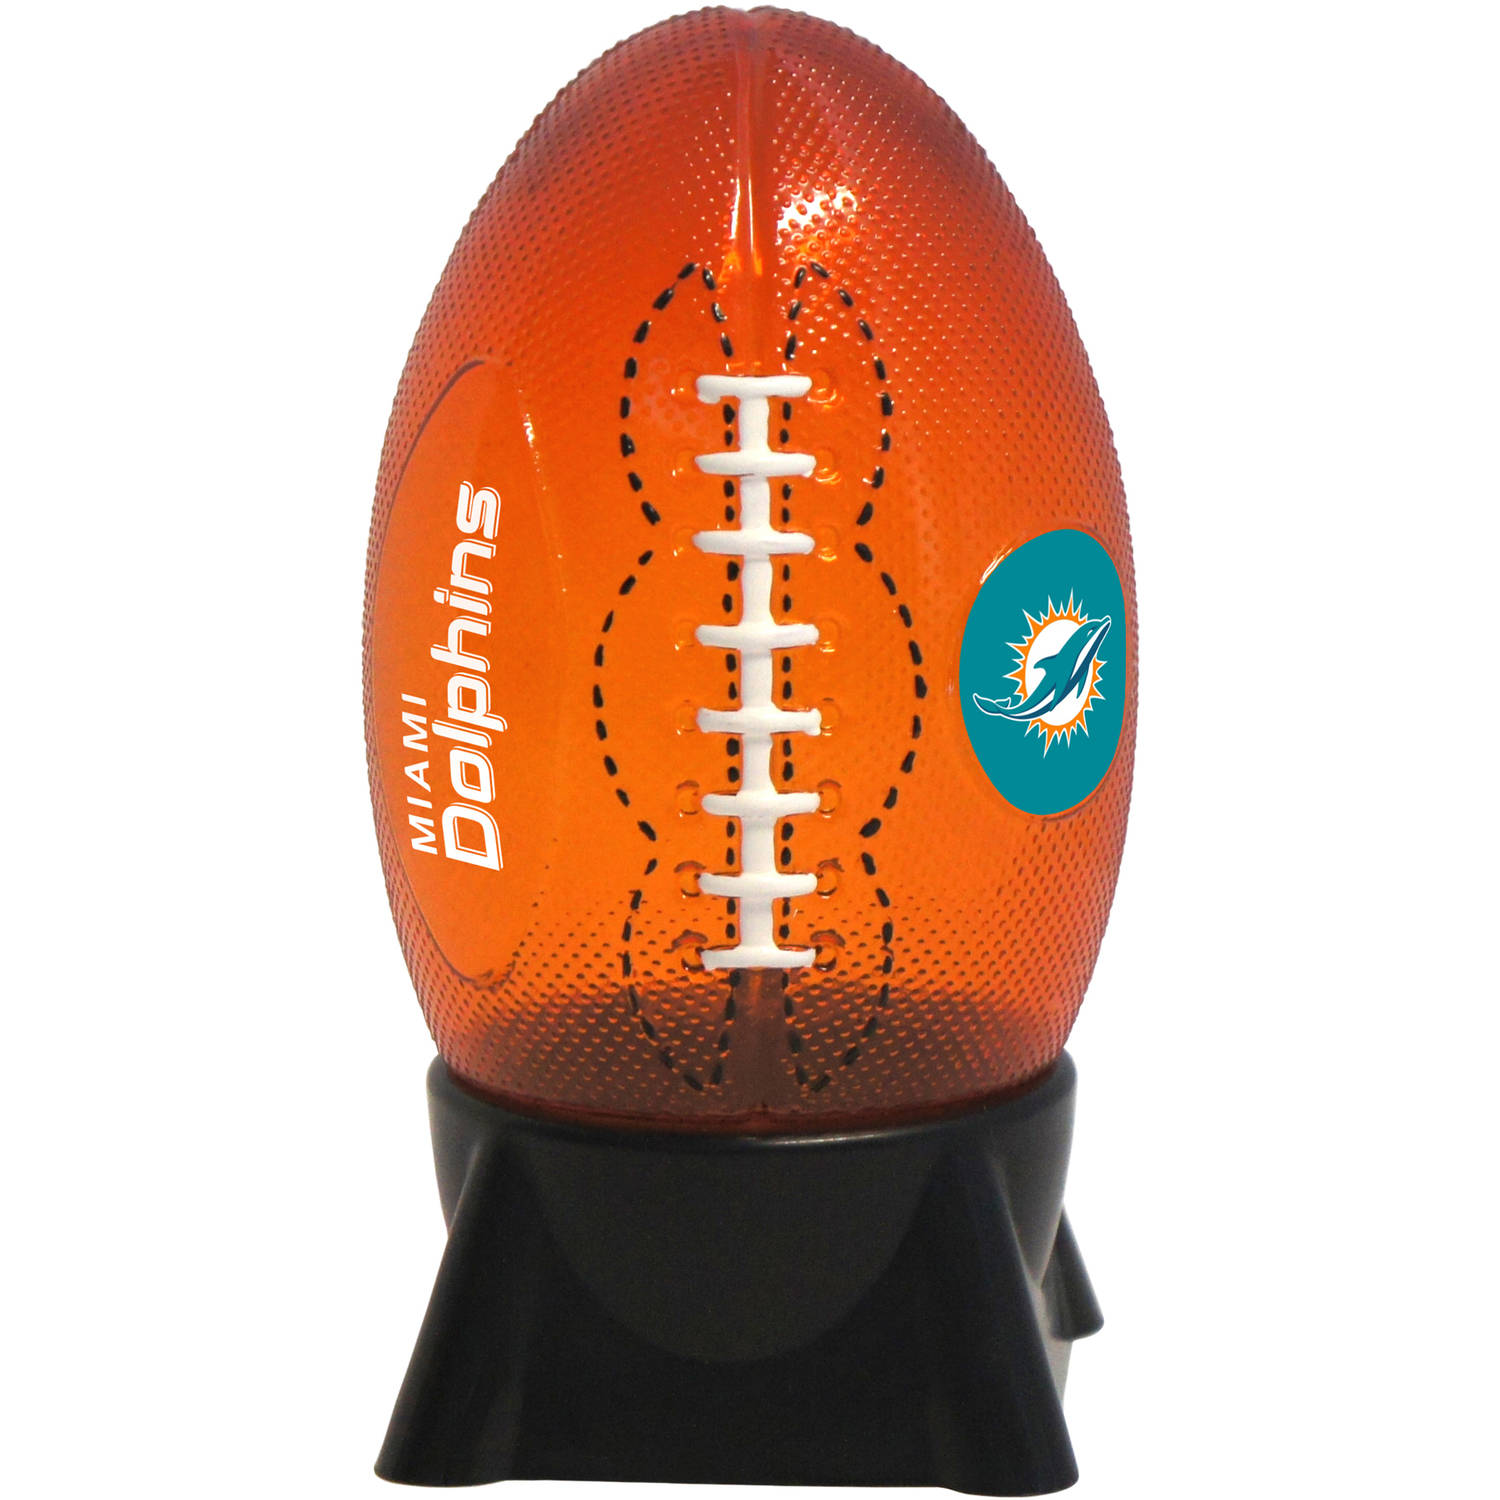 NFL Miami Dolphins Boxed Night Light